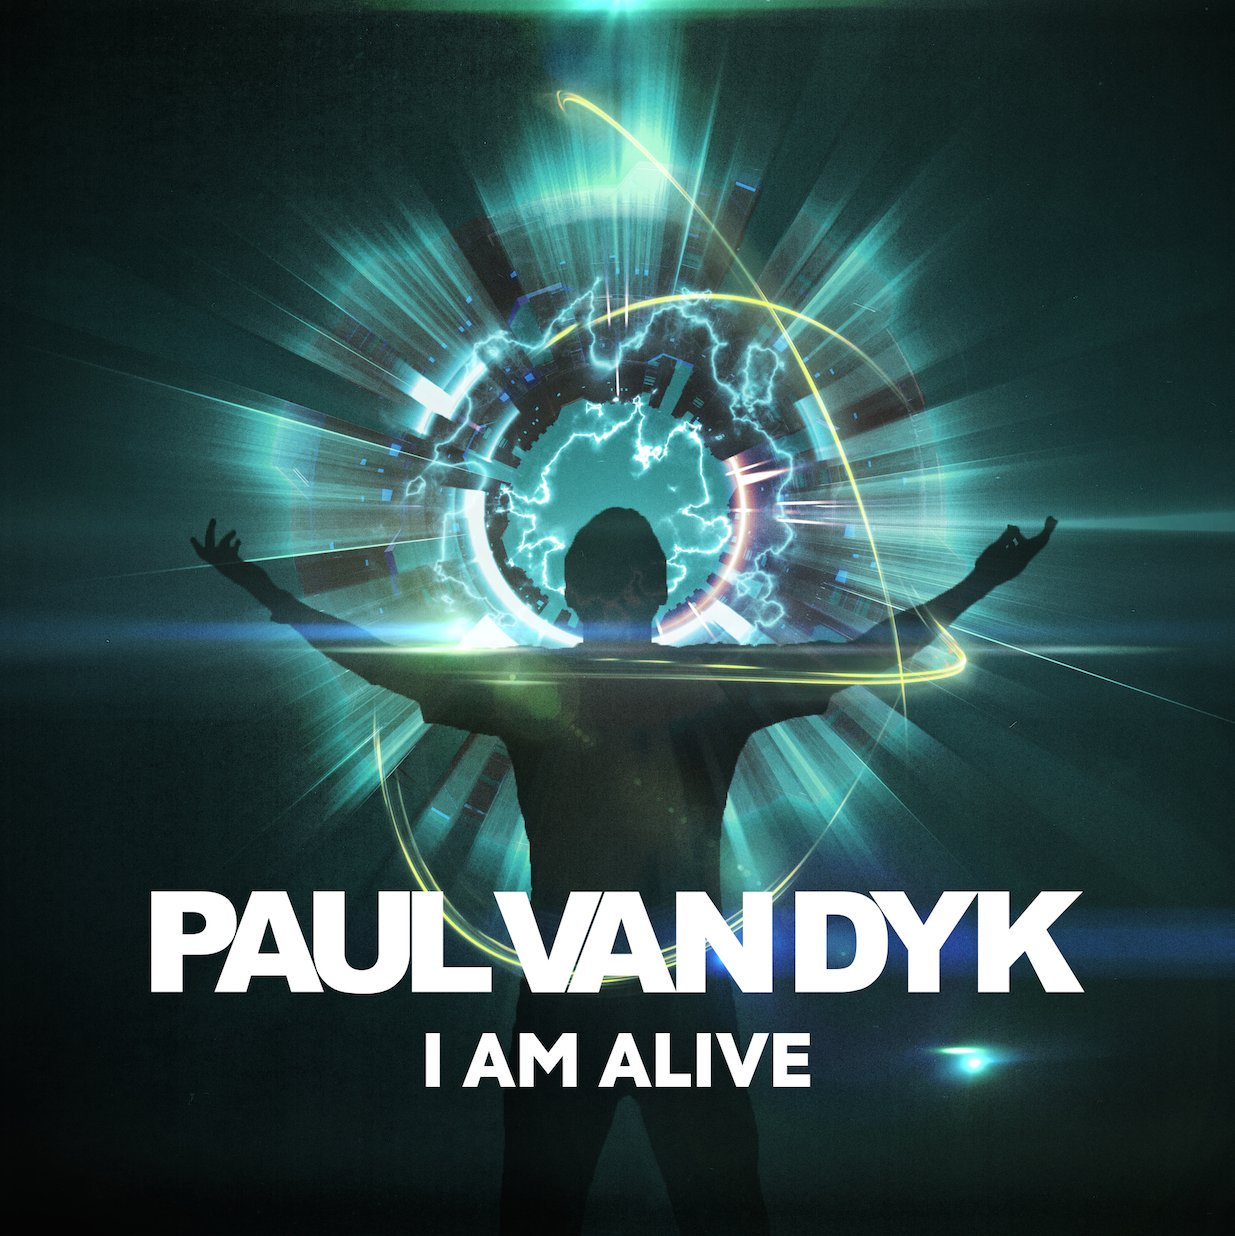 My new single I AM ALIVE is out now! https://t.co/LOXvHr9fXU https://t.co/GtVIPAY0YL